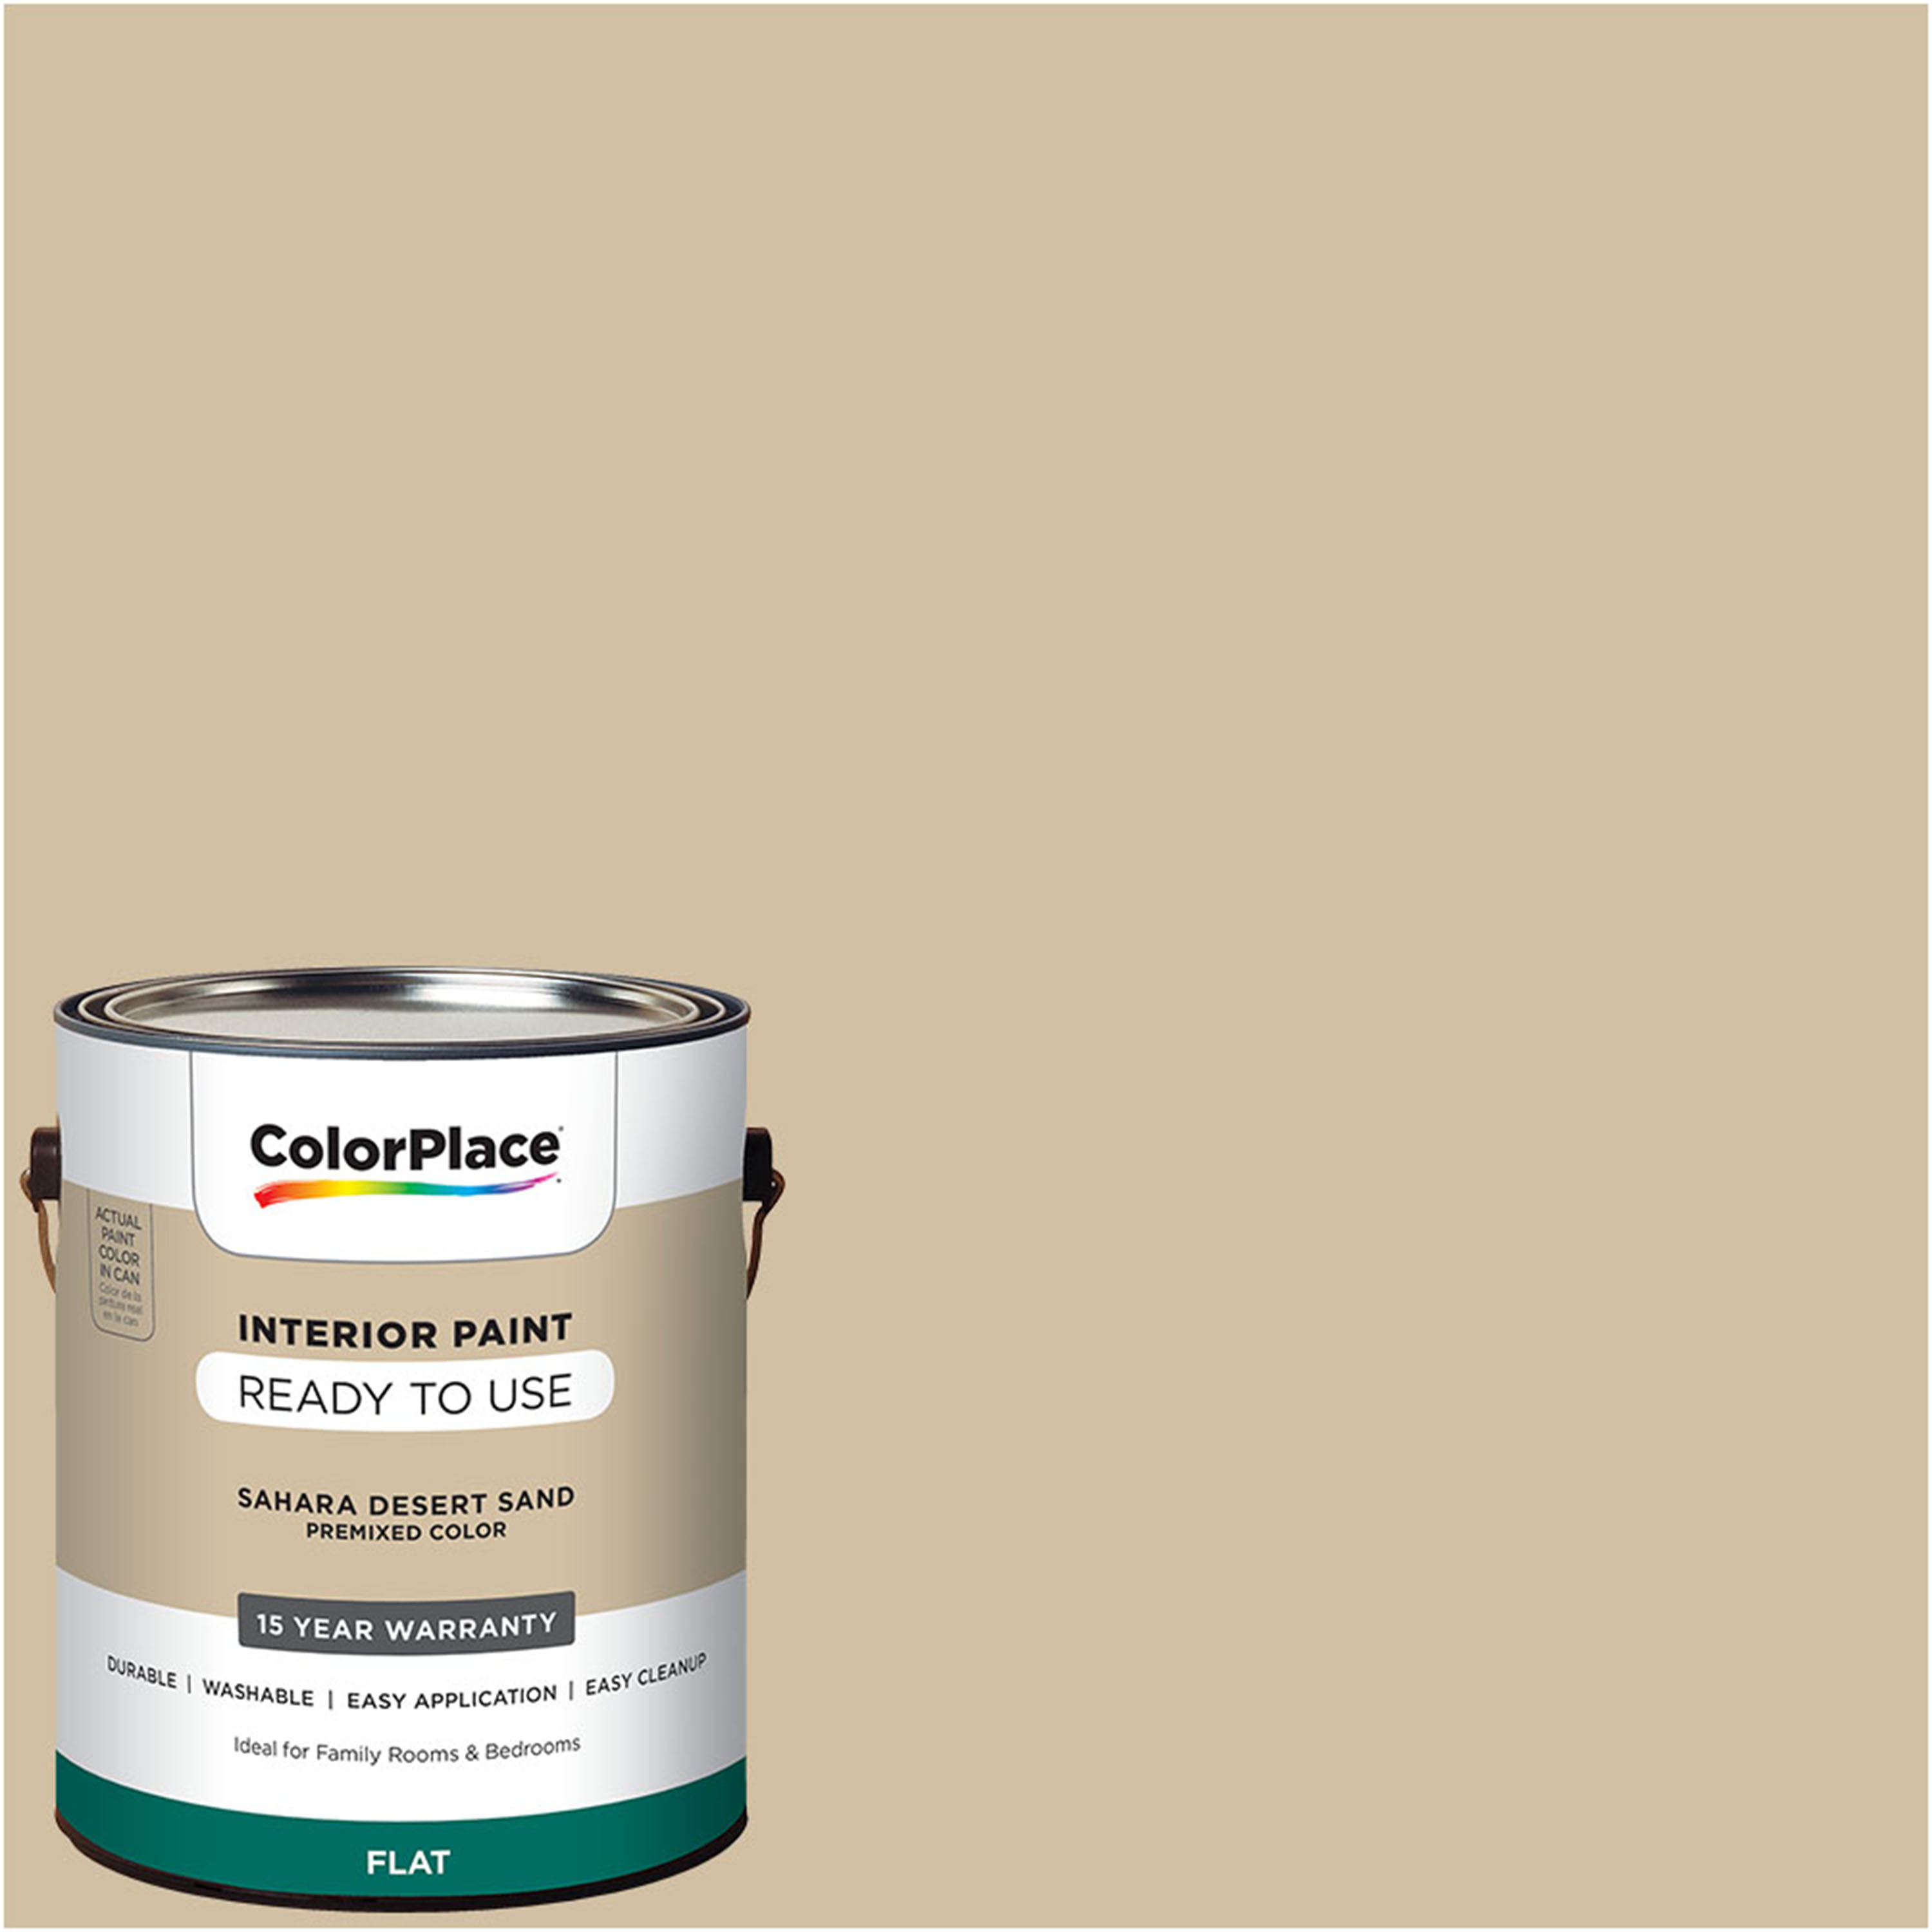 ColorPlace Pre Mixed Ready To Use, Interior Paint, Sahara Desert Sand, Flat Finish, 1... by PPG Architectural Coating